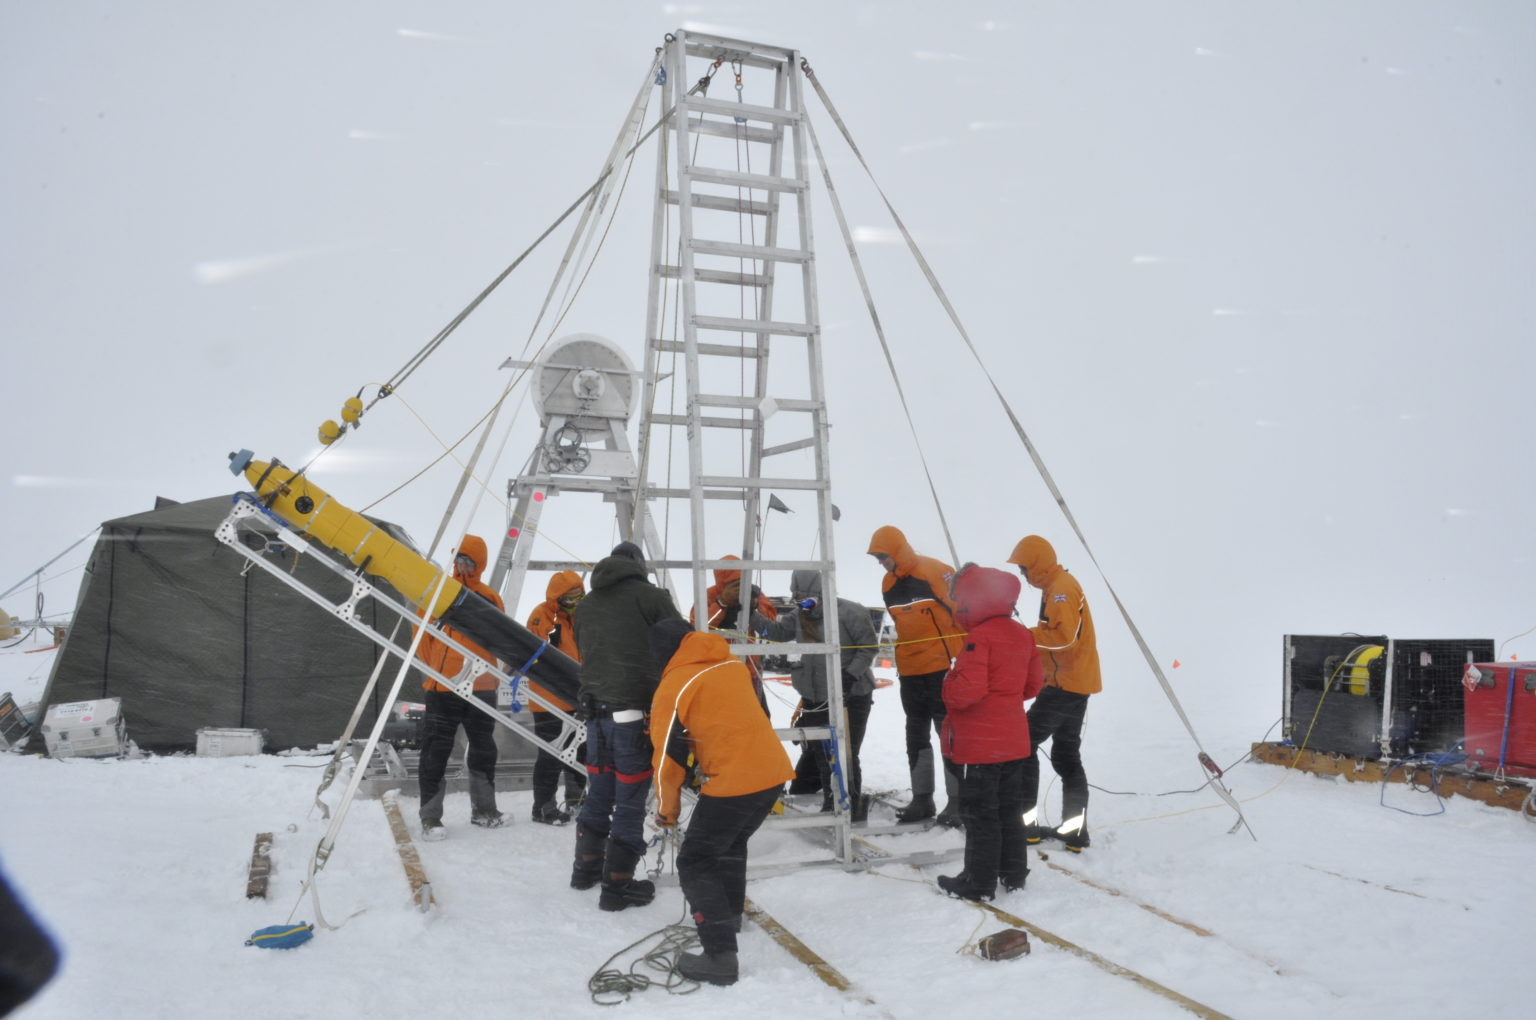 It's the first time scientists have drilled through the ice (BAS)